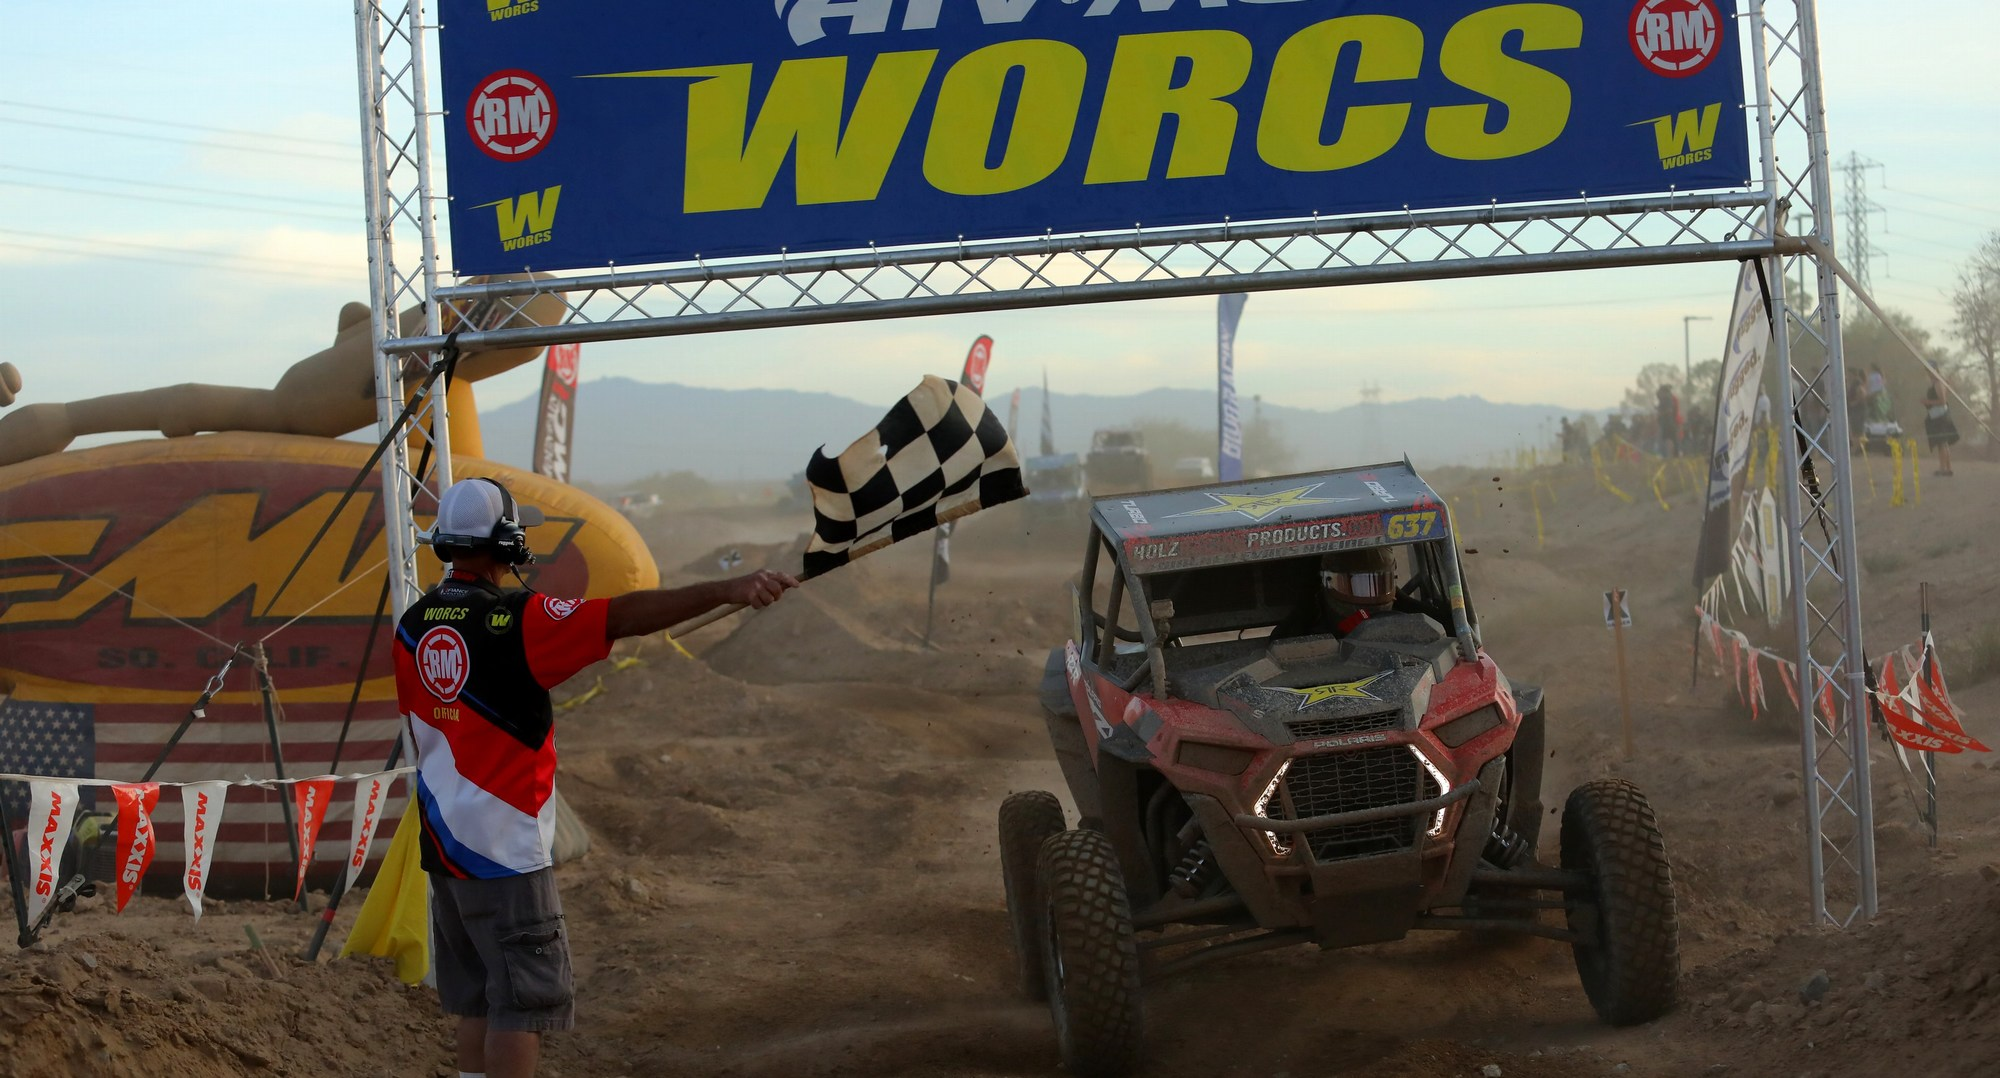 2018-09-rj-anderson-desert-finish-utv-worcs-racing